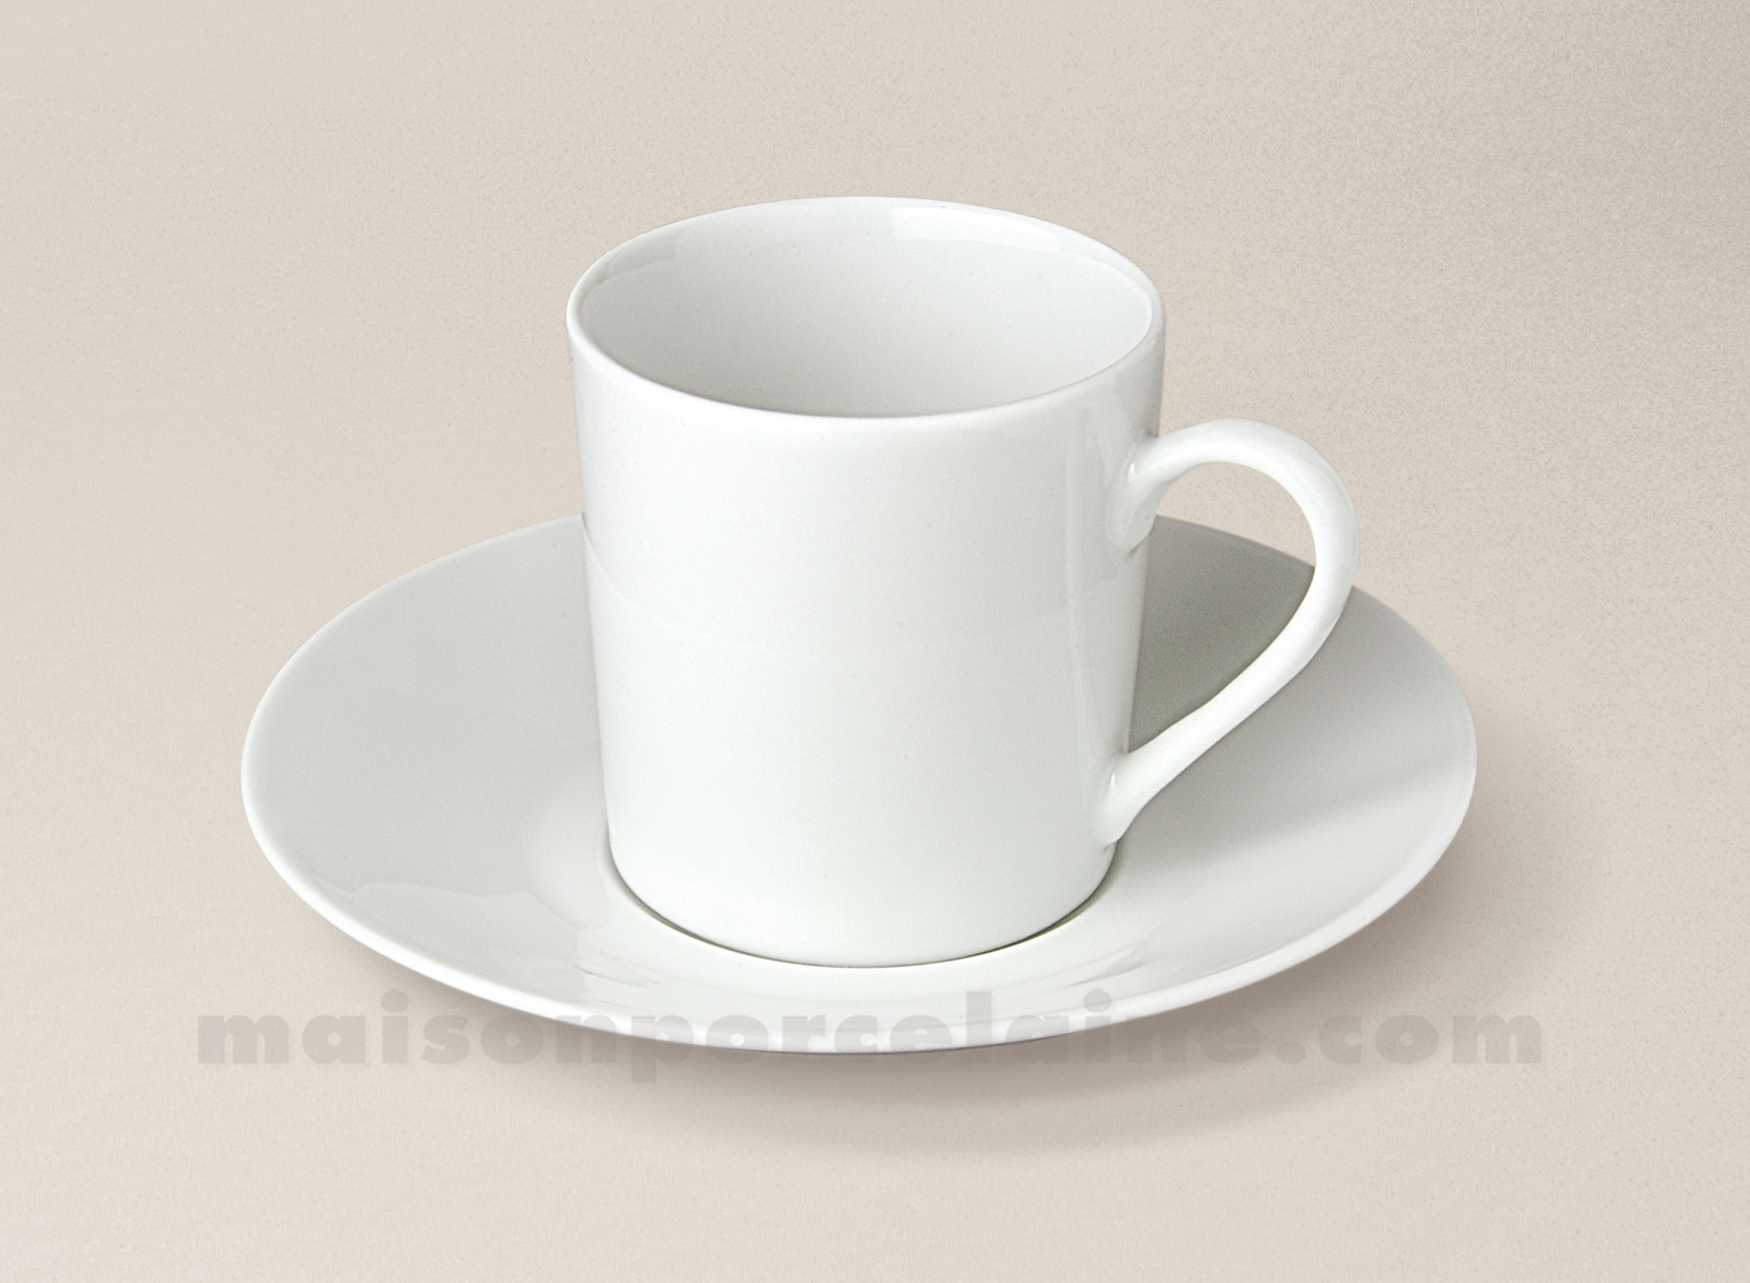 tasse a cafe blanche tasse caf 17 cl m lamine blanche plastorex tasse assiette tasse caf 100. Black Bedroom Furniture Sets. Home Design Ideas